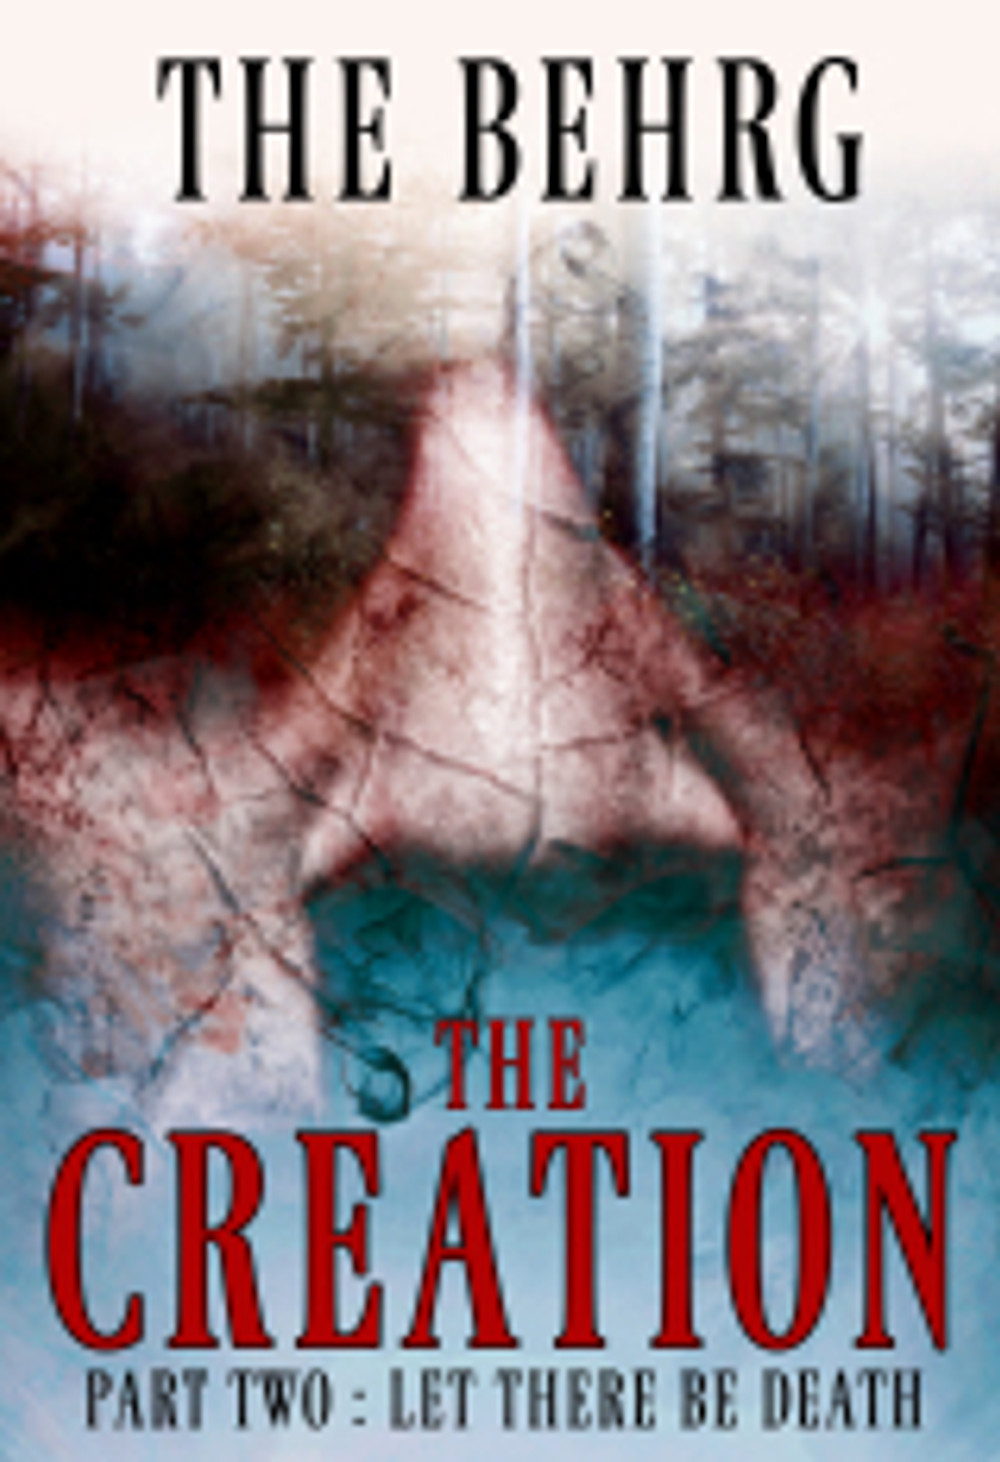 The Creation - Let There Be Death